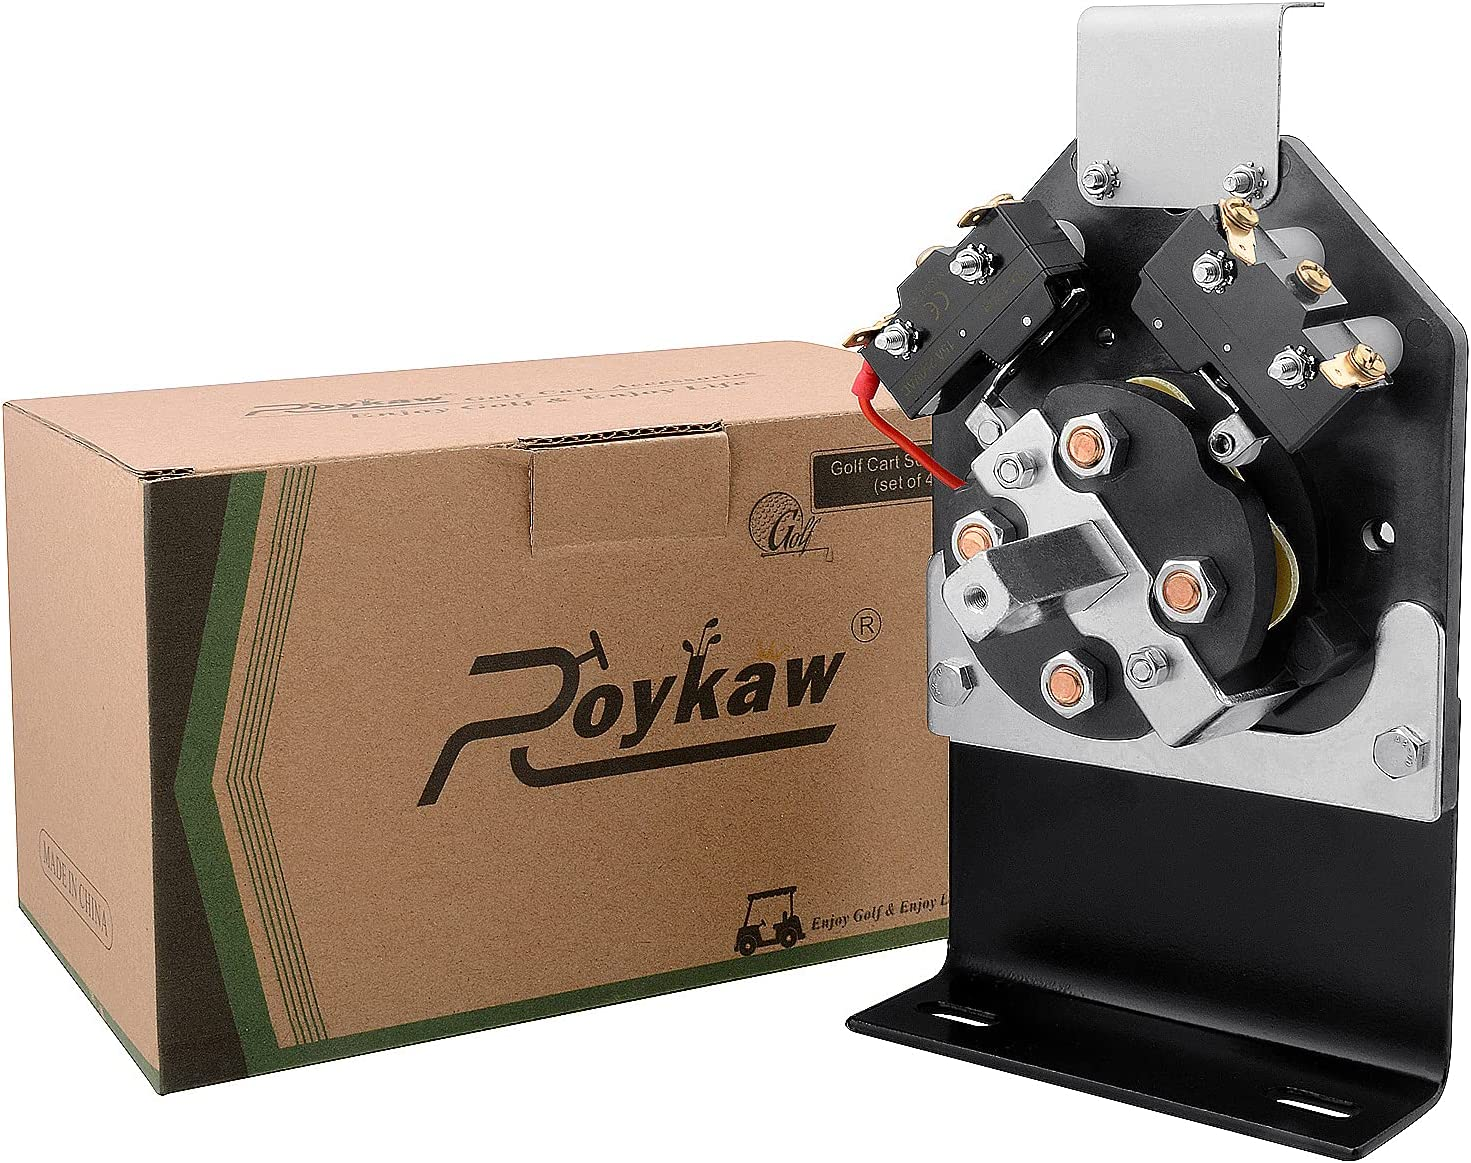 Roykaw EZGO Forward and Reverse Free shipping anywhere in the nation Direct stock discount 2-C Electric for Assembly Switch